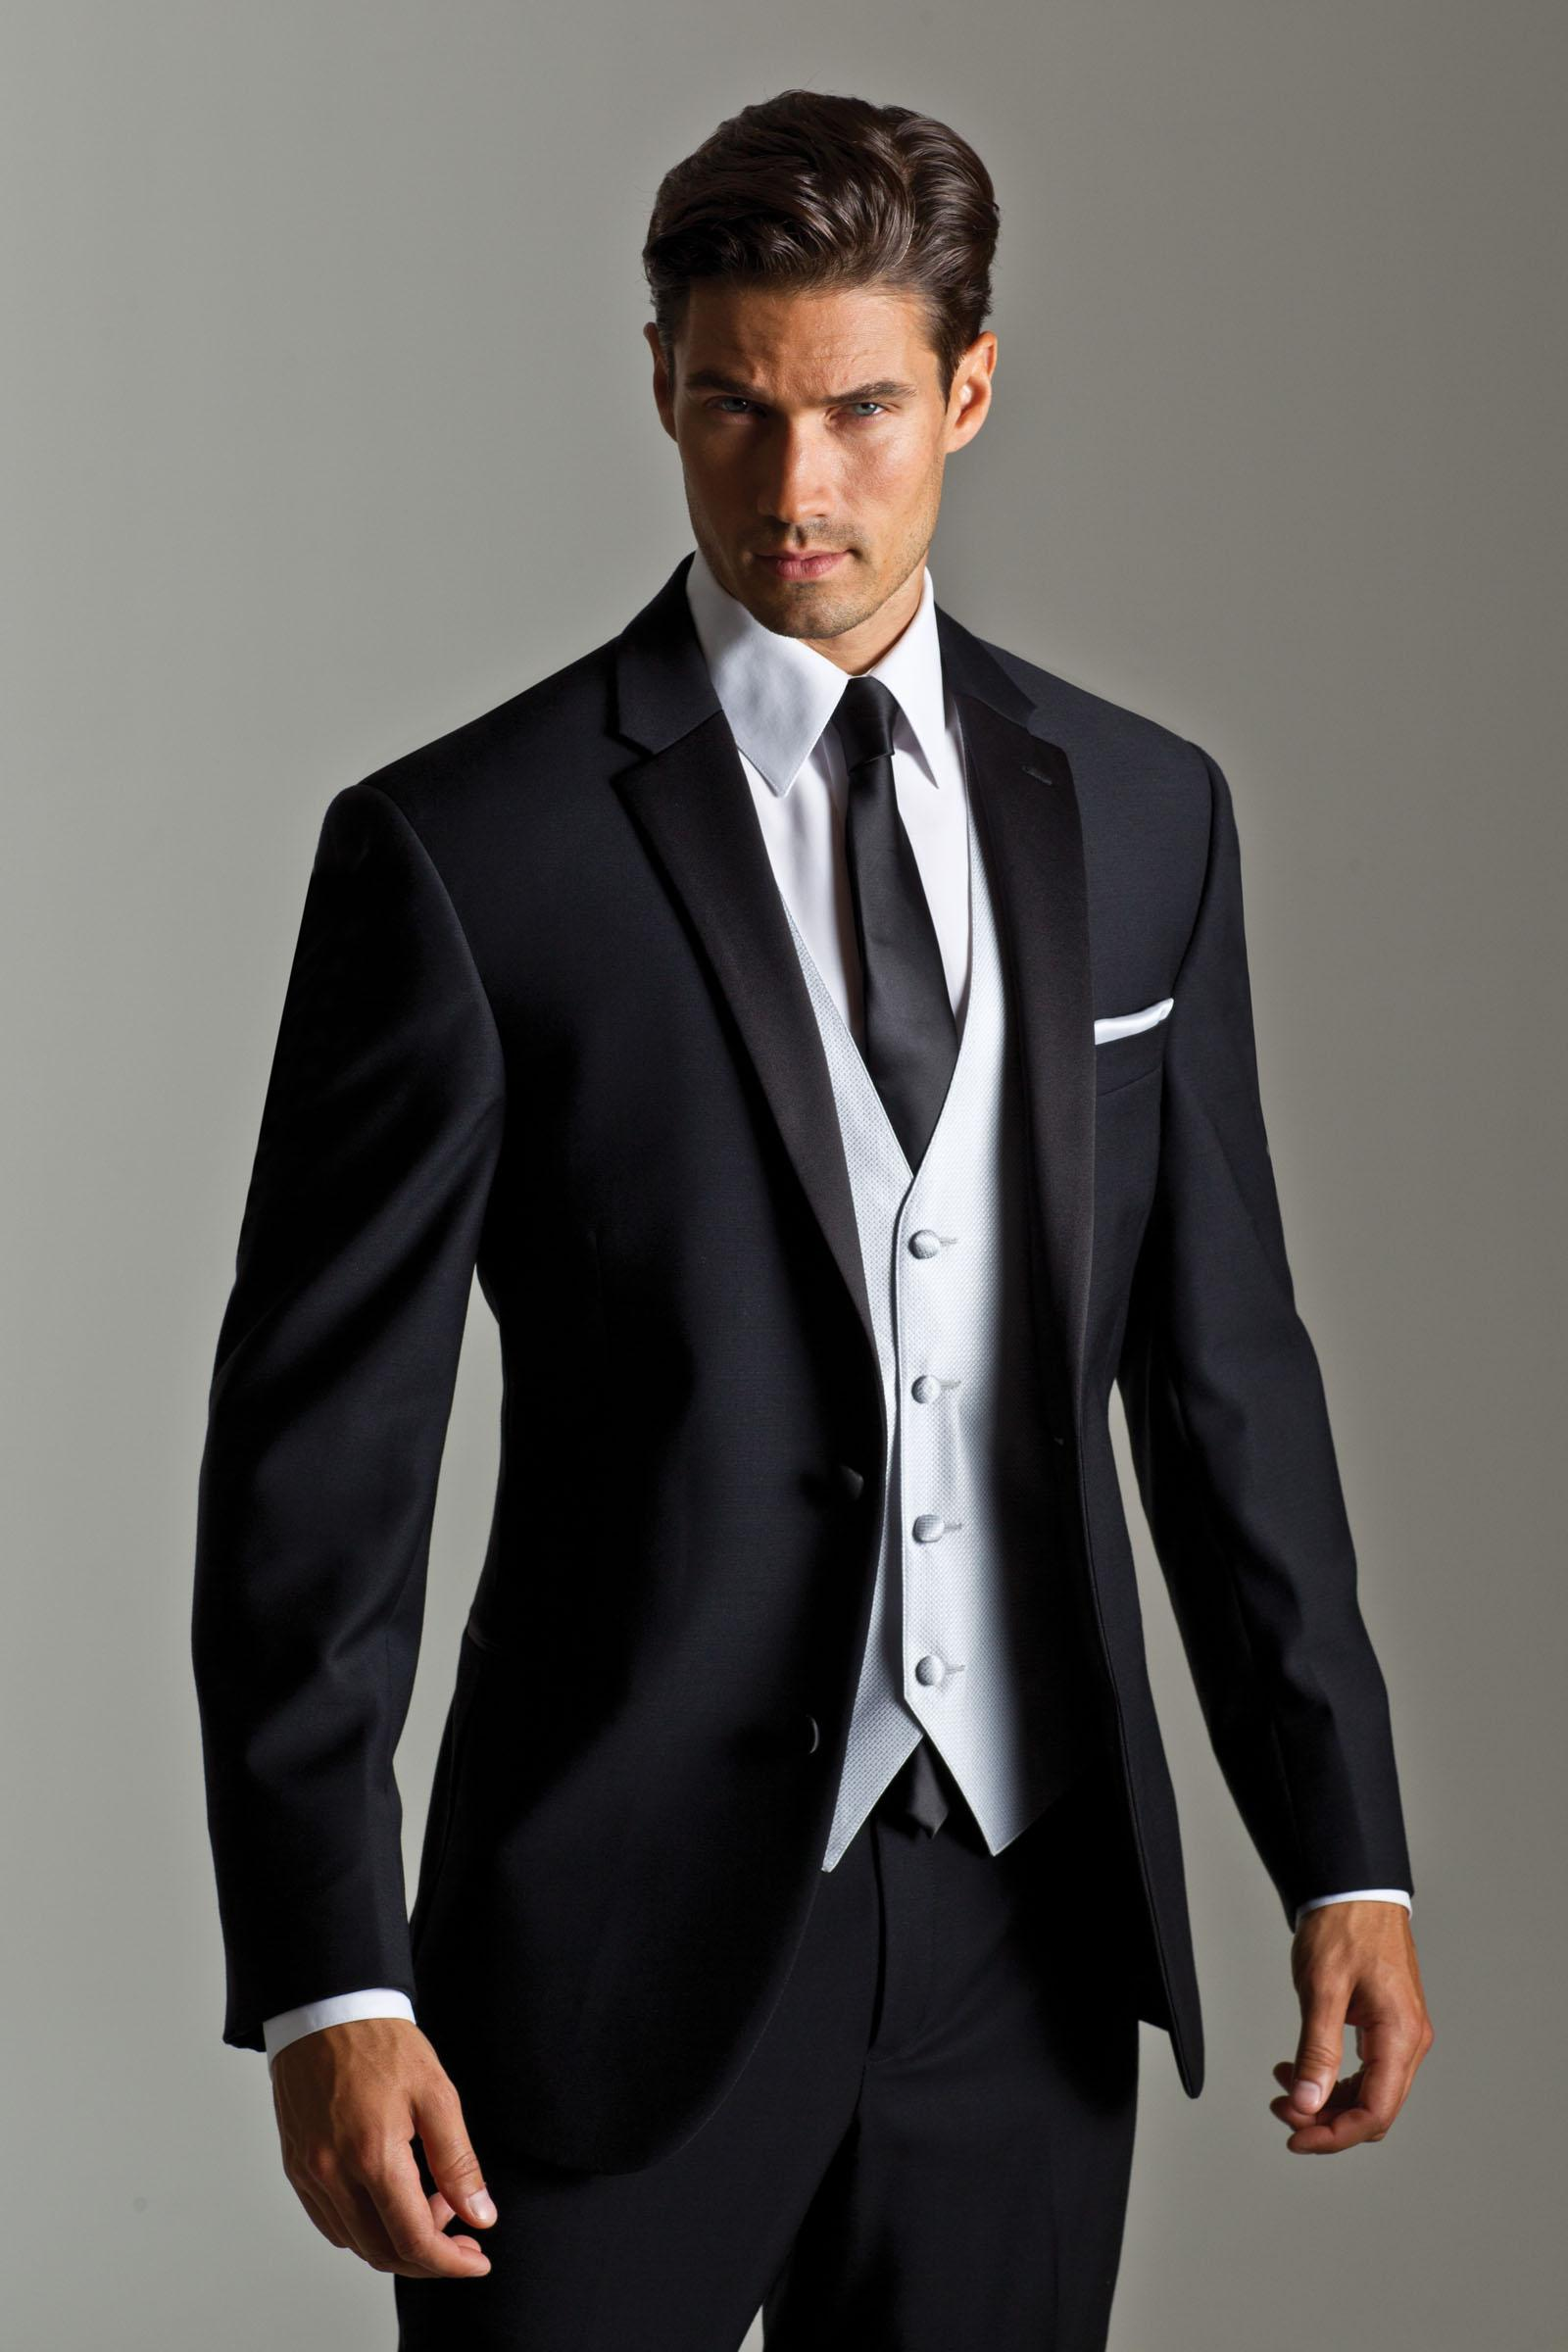 Custom Made Black Wedding Suits for Men Tuxedos Notched Lapel Mens